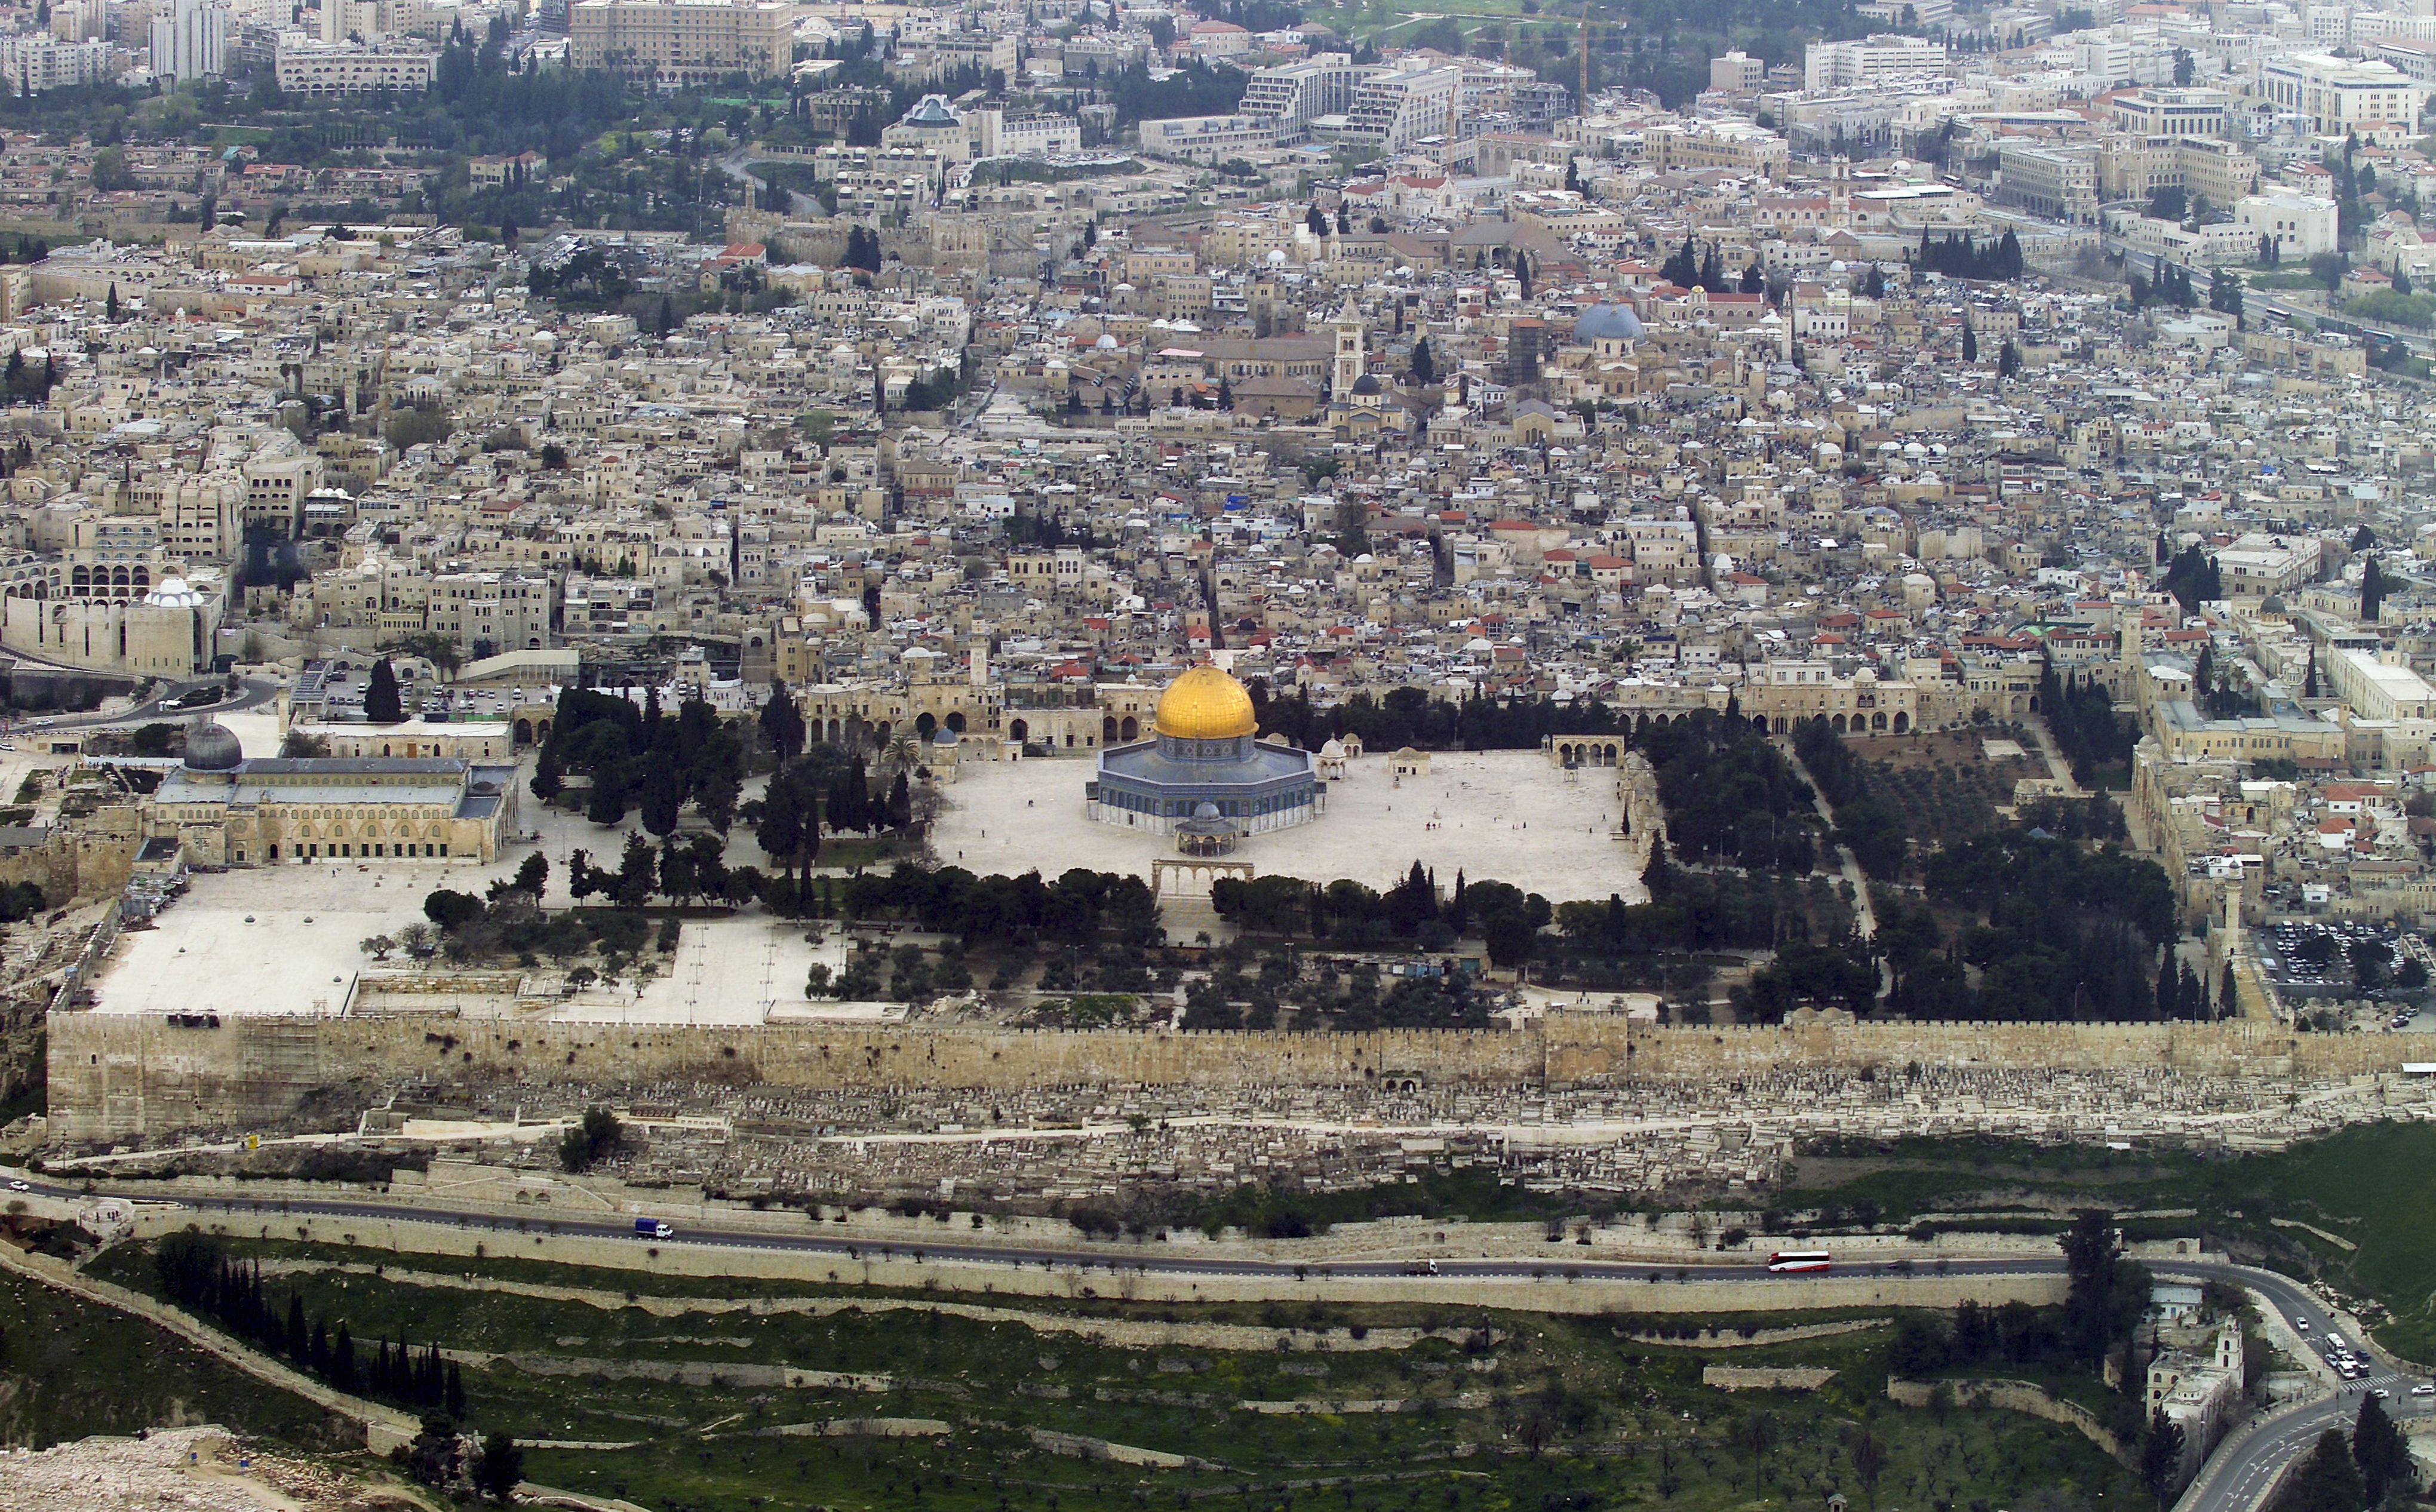 The Temple Mount from the air (Photo/Andrew Shiva-Wikipedia CC BY-SA 4.0)